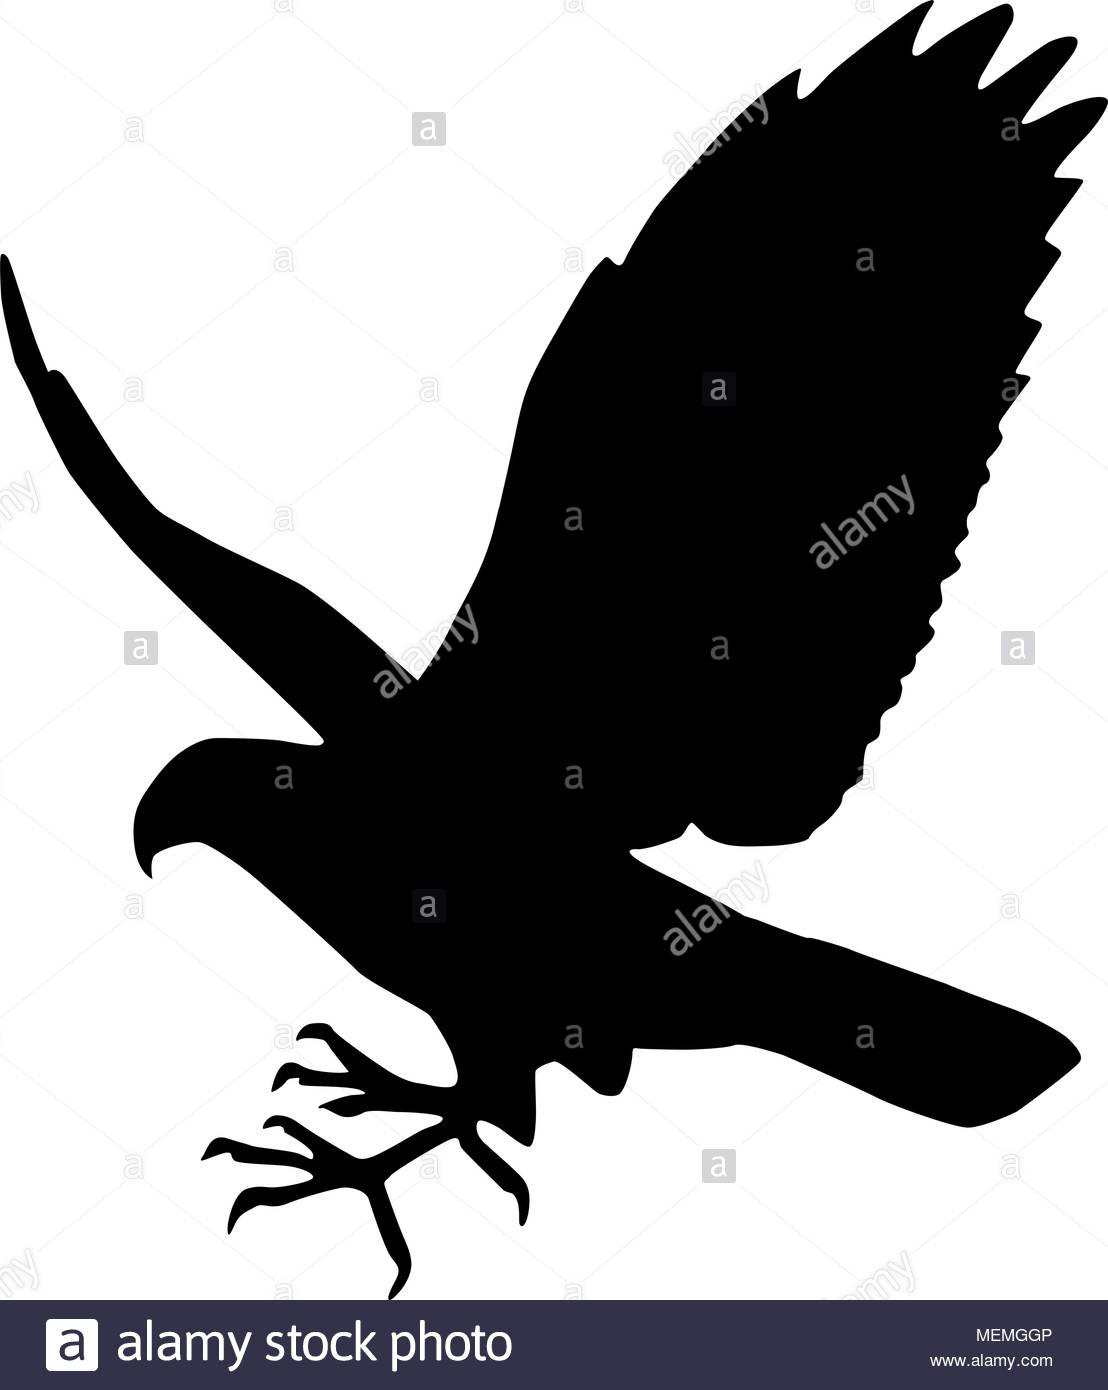 Falcon - Retro Clipart Illustration - Stock Image